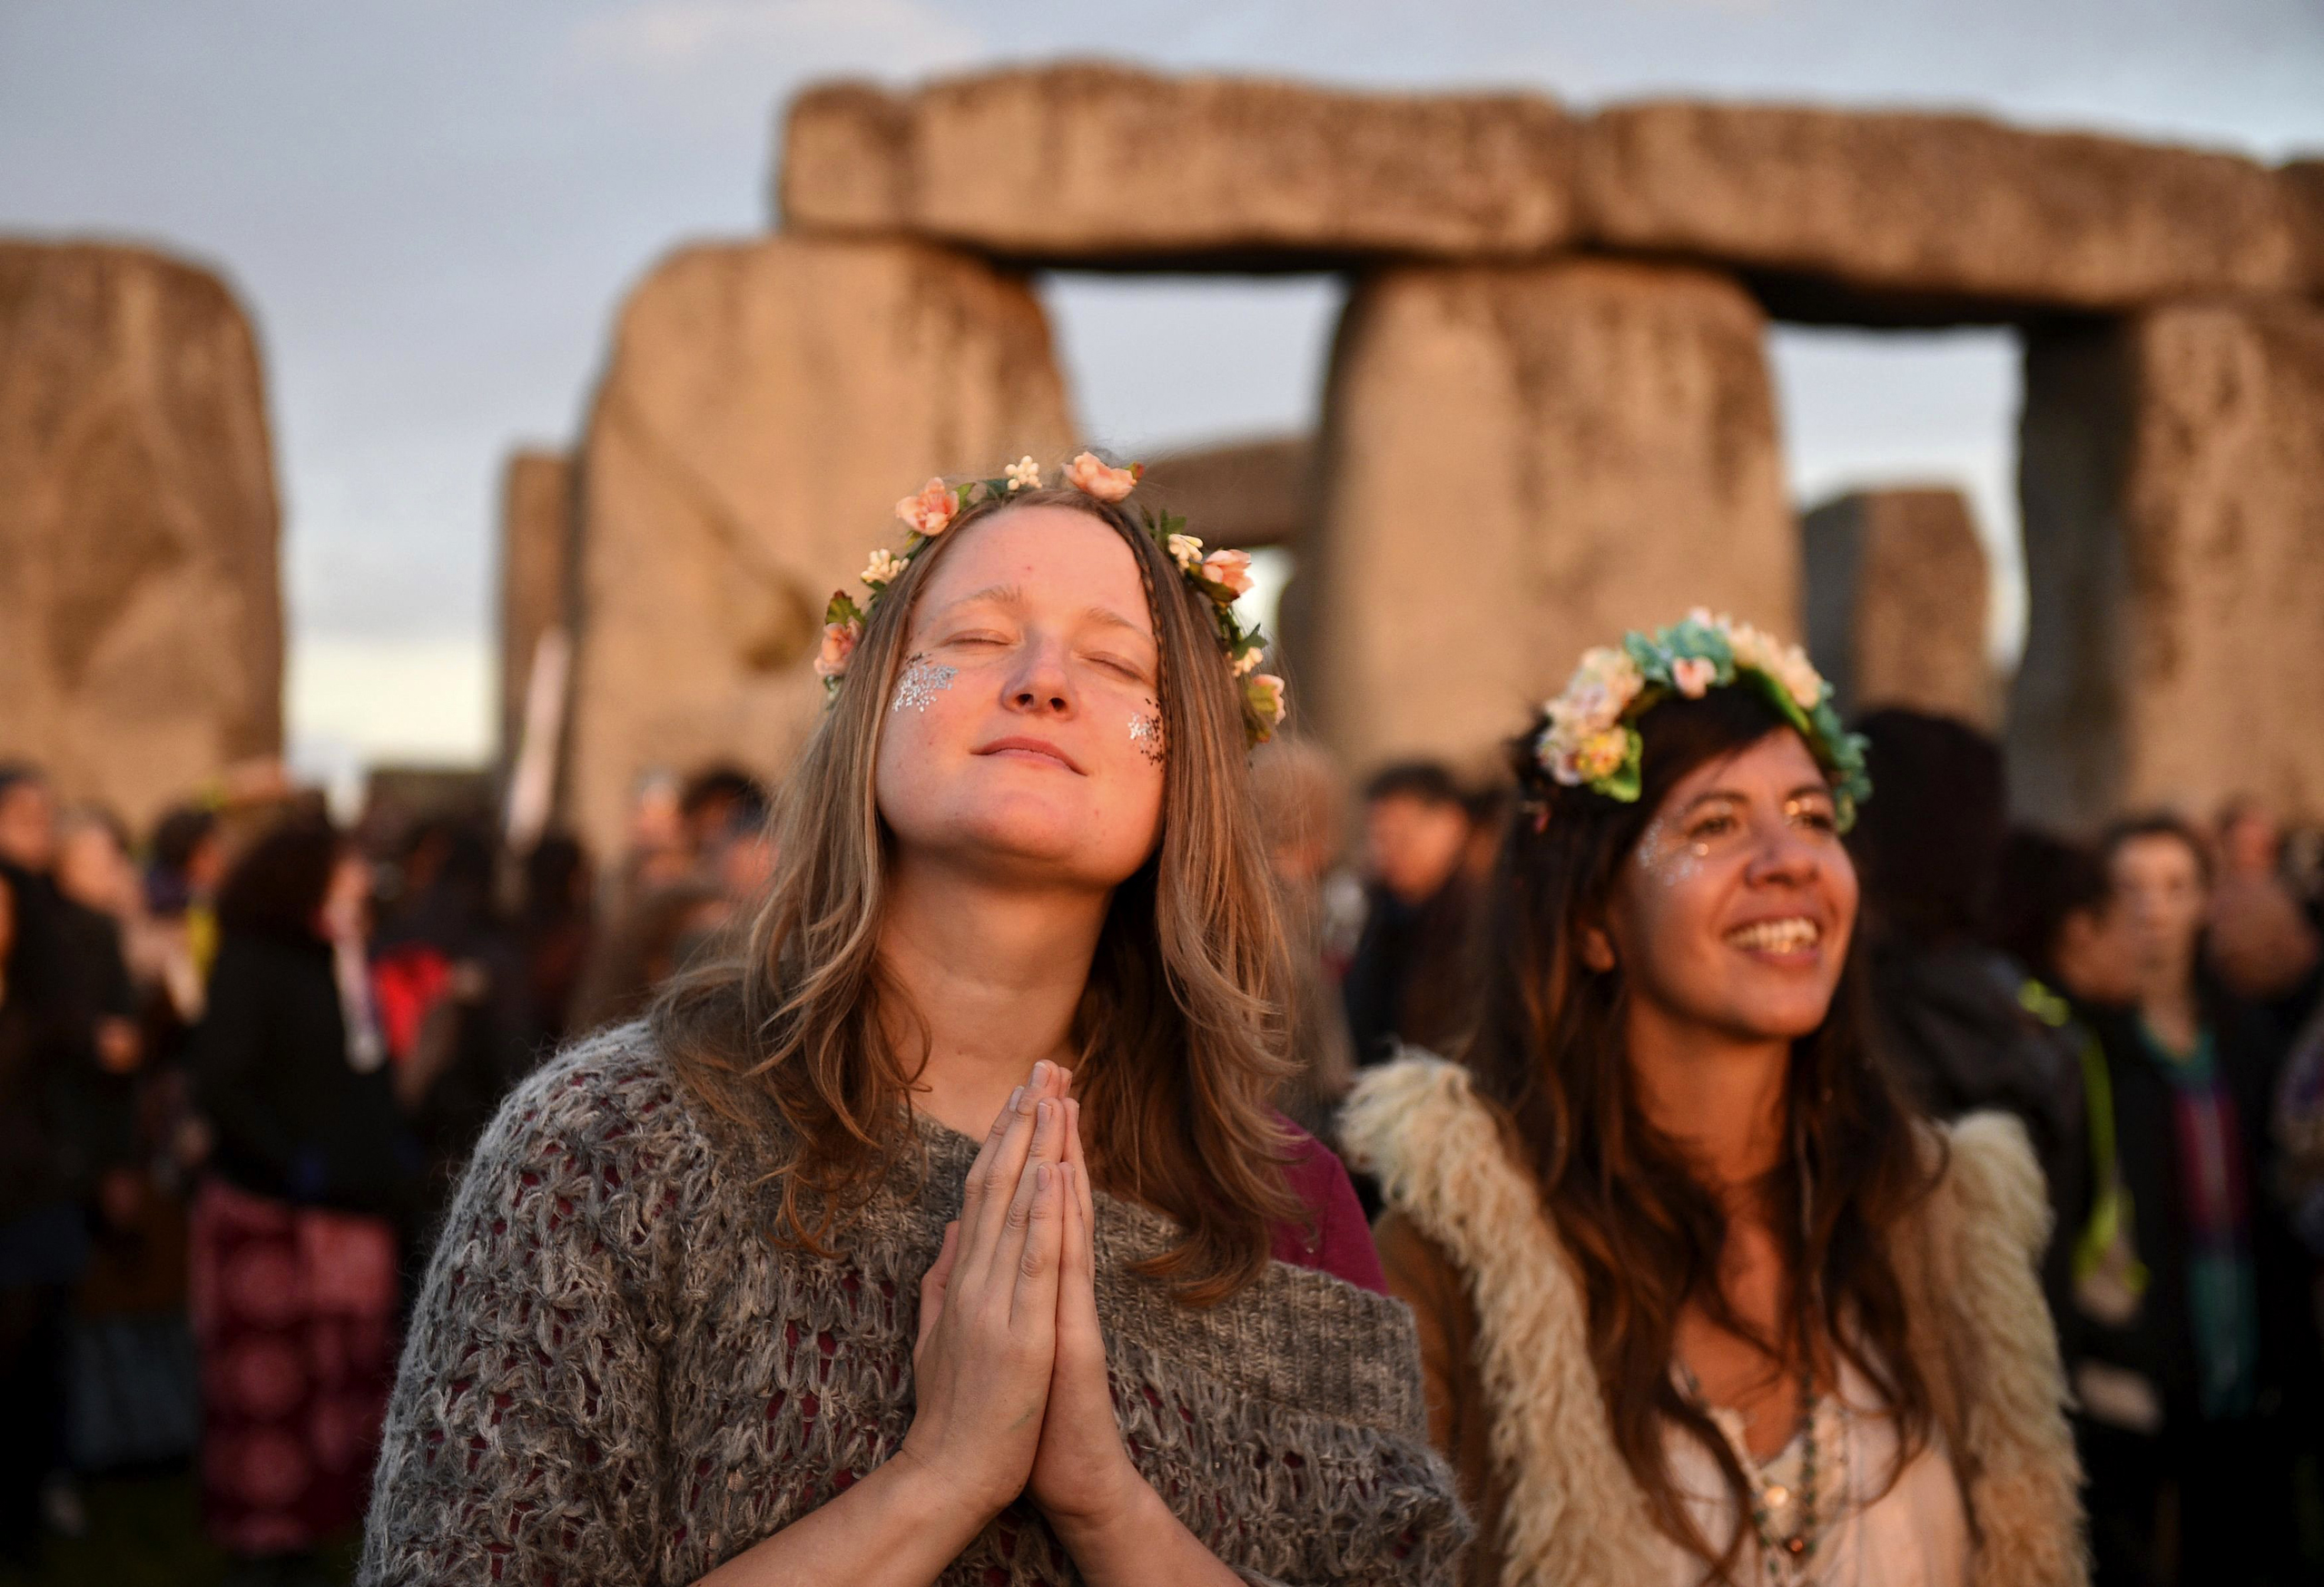 People gather to see the sun rise at the ancient stone circle Stonehenge, during the Summer Solstice, the longest day of the year, in Wiltshire, United Kingdom, June 21, 2016.